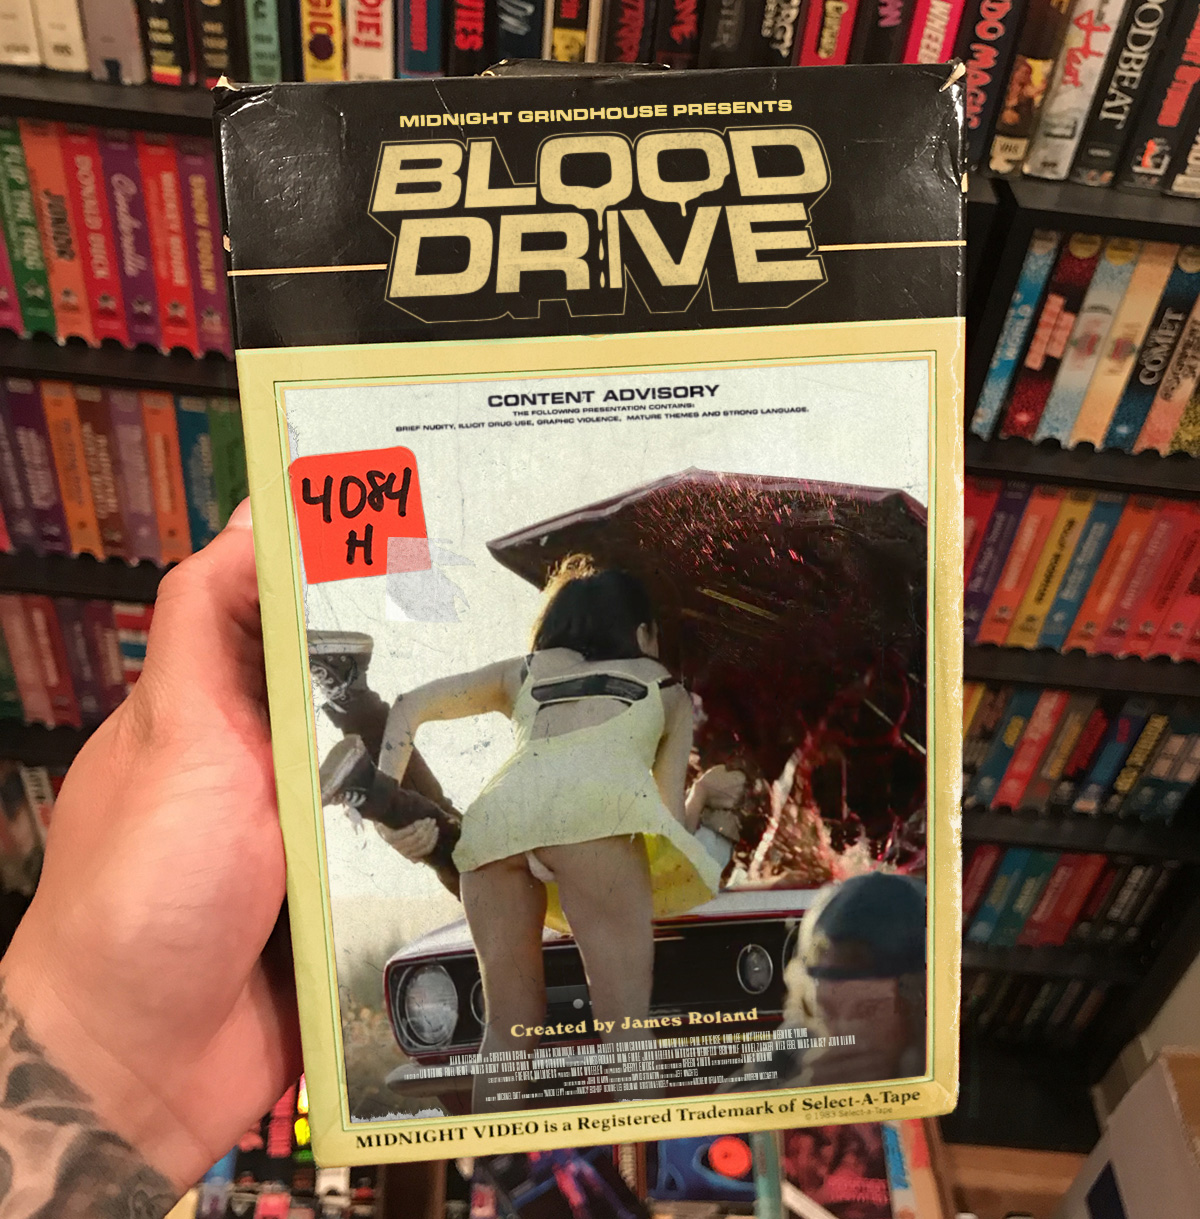 blood_drive_vhs_box_low.jpg